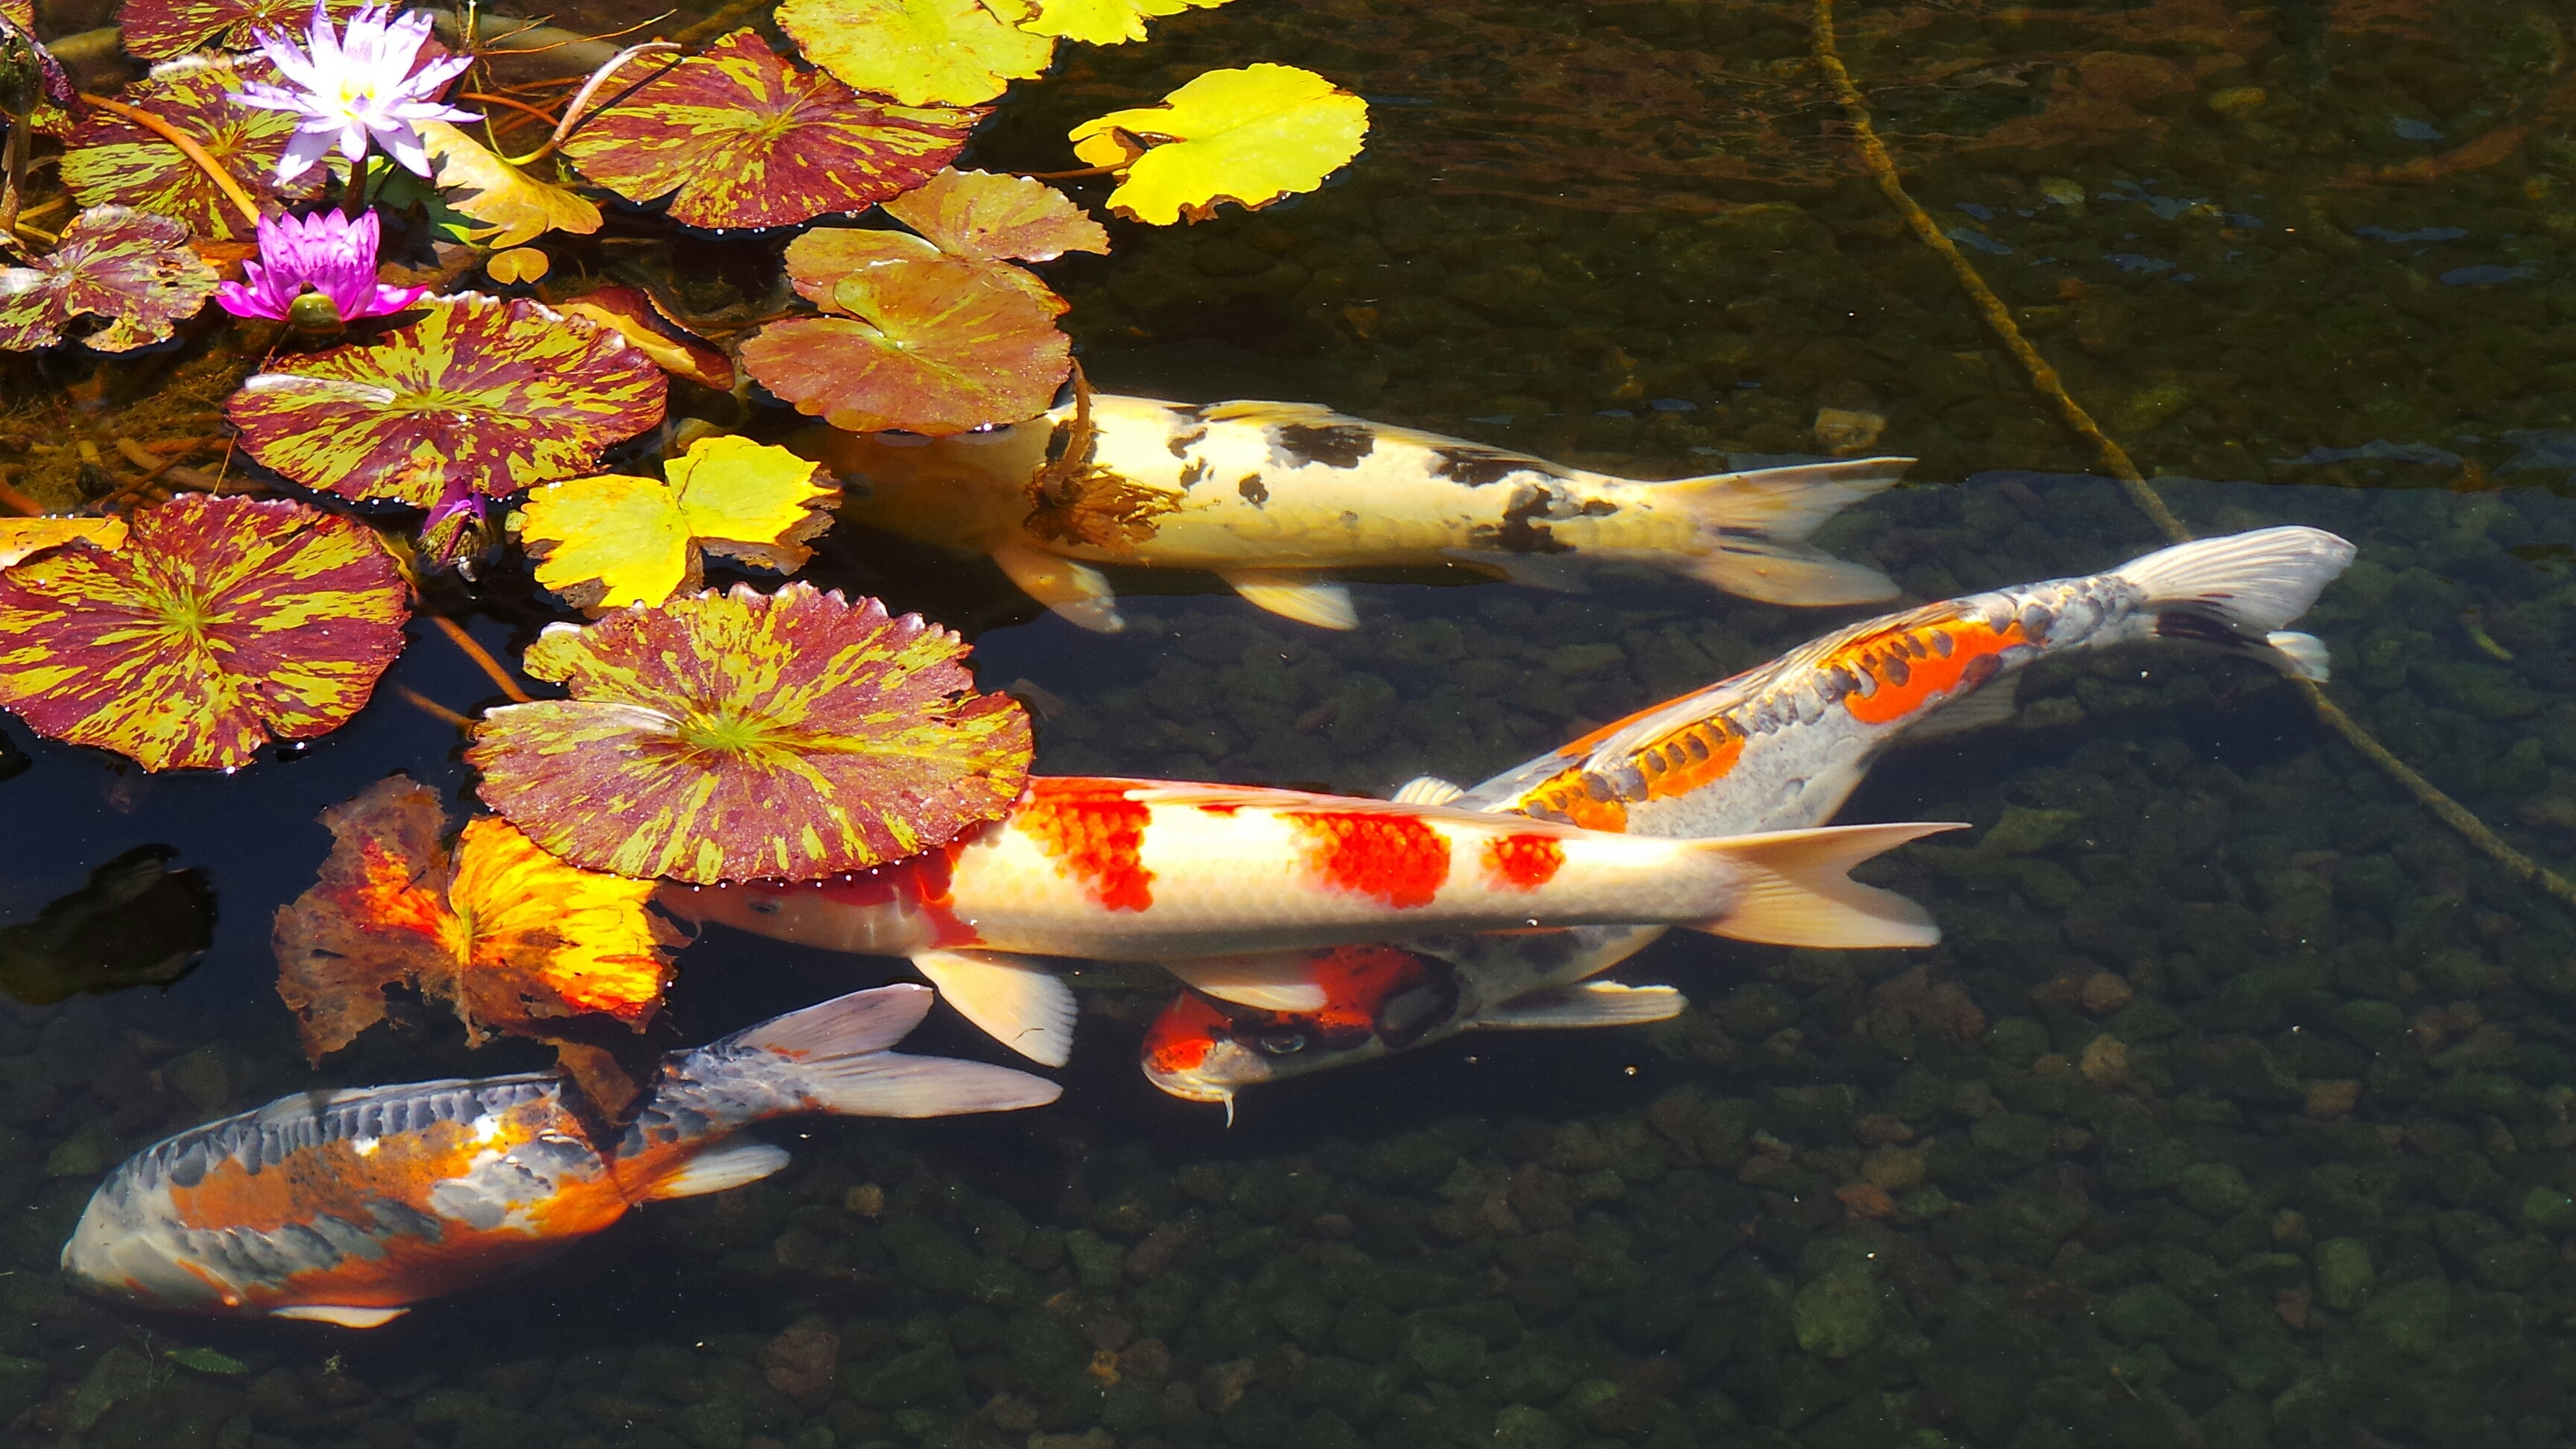 Guide to the fashion island koi ponds in newport beach for Koi carp fish pond